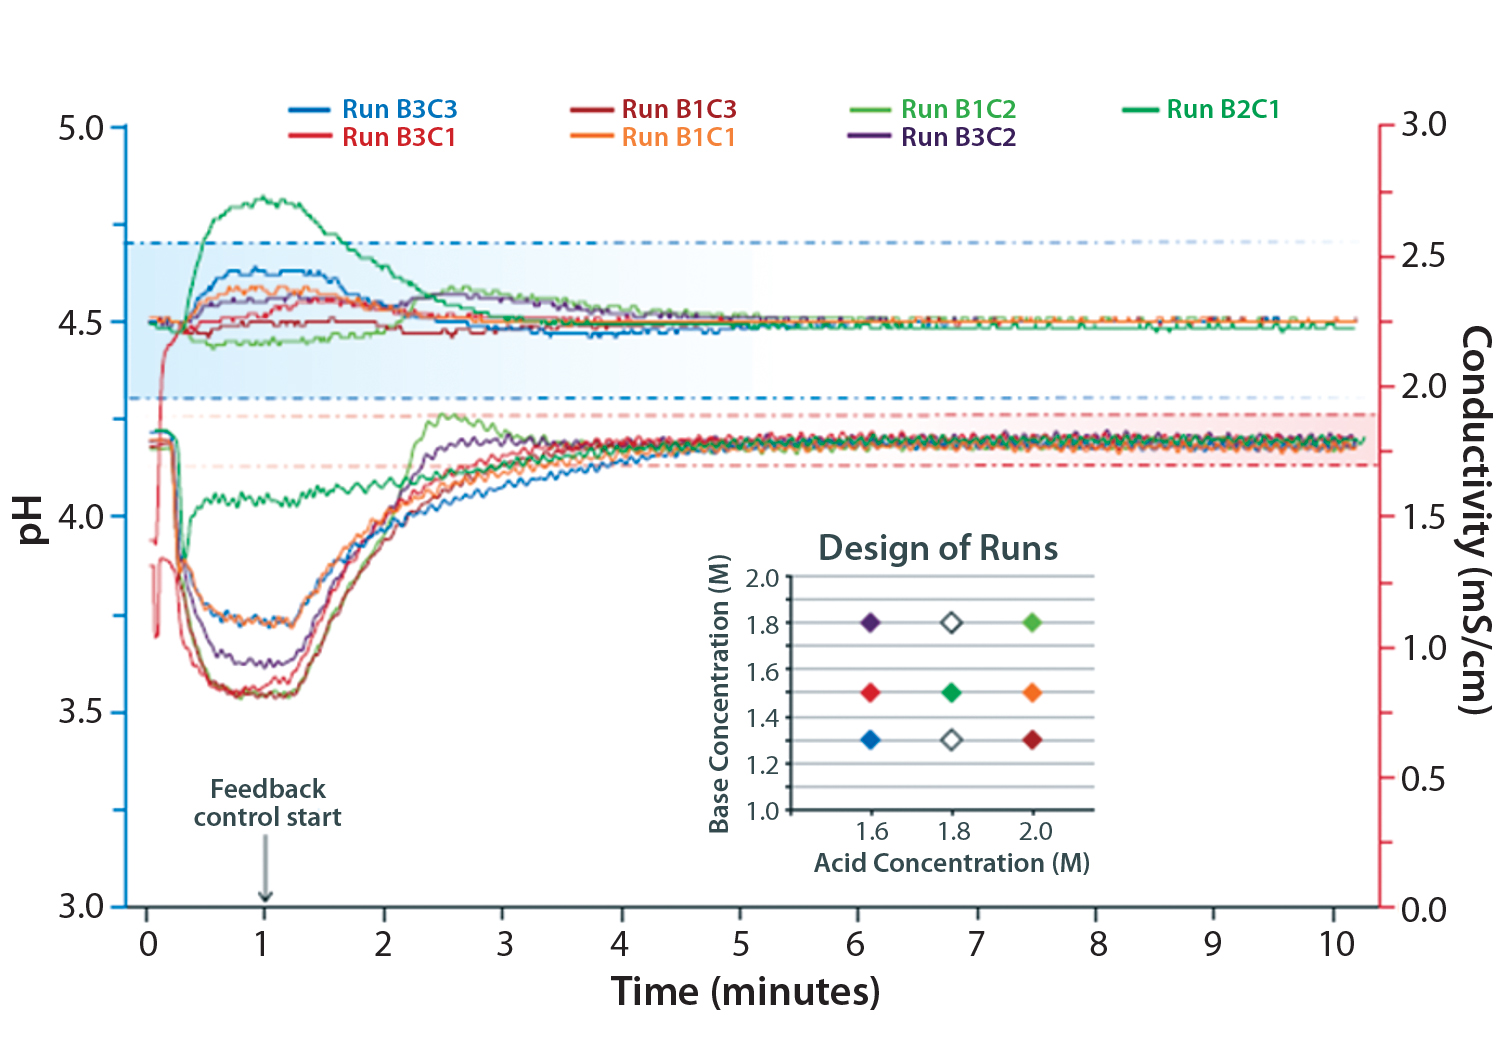 Addressing The Challenge Of Complex Buffer Management An In Line Diagram 2 Illustrates A More Home Theater Configuration Seven Runs Robustness Study Using Ph And Conductivity Feedback Control Those From Same Run Have Color Insert Shows